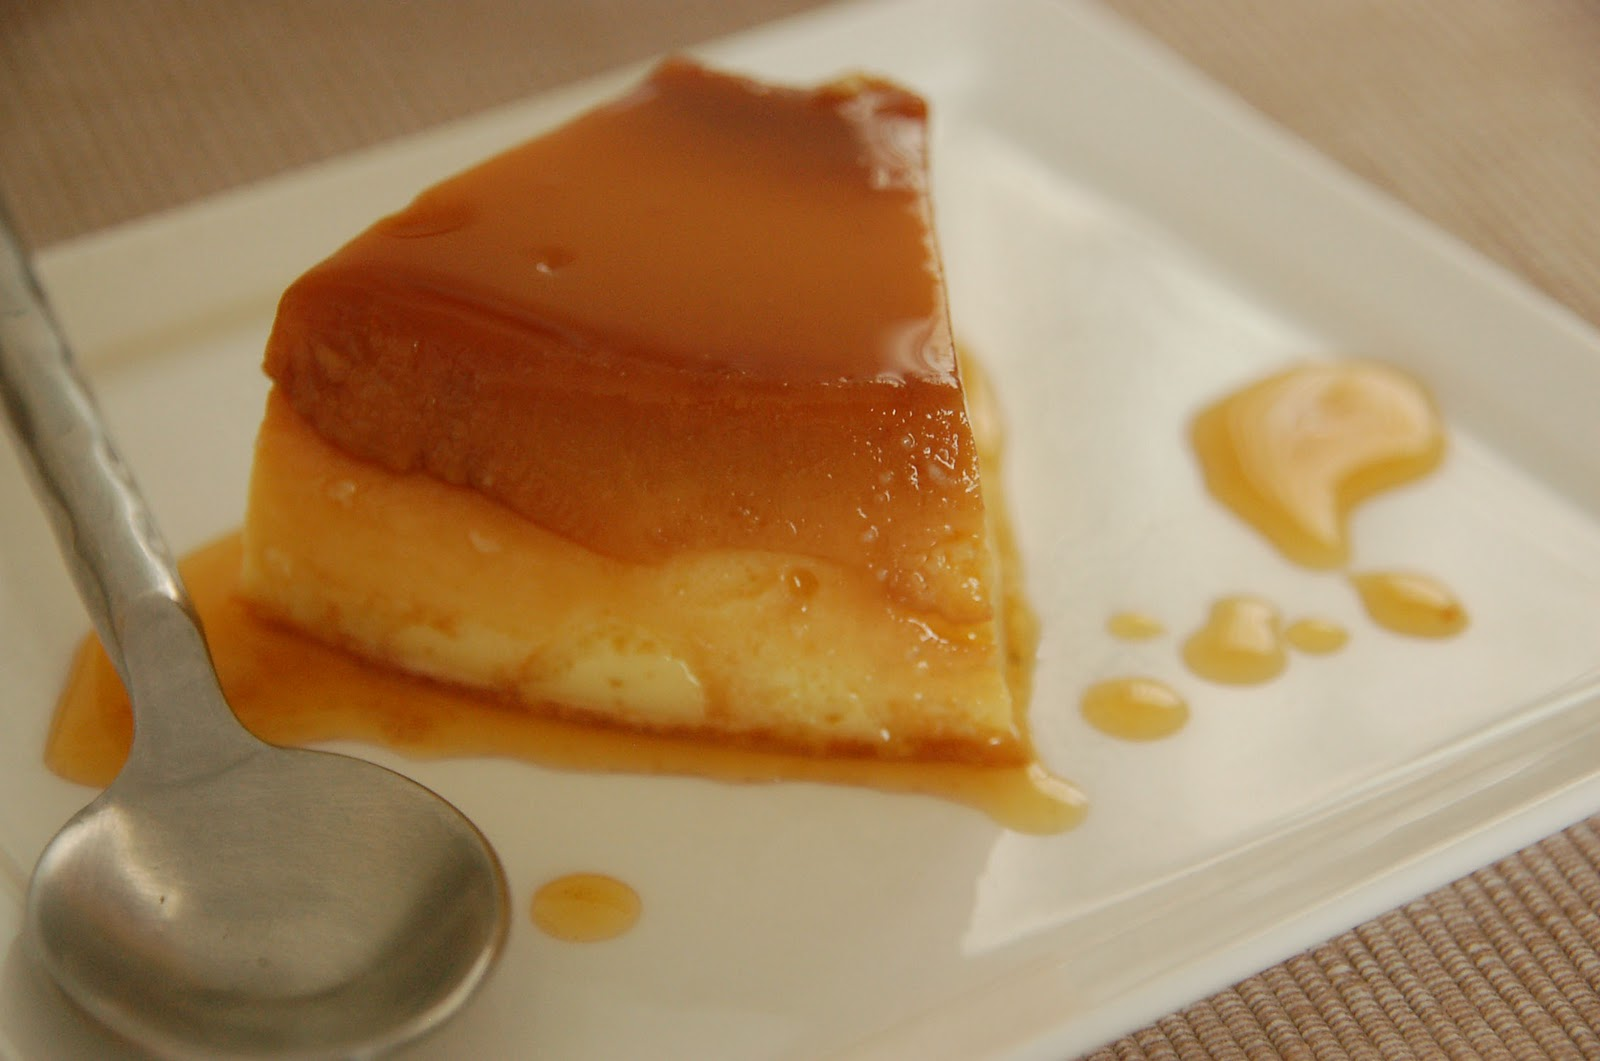 leche flan thesis Evaporated and sweetened condensed milk create a rich and easy to make dulce de leche flan garnish with whipped cream, chocolate shavings or dulce de leche.